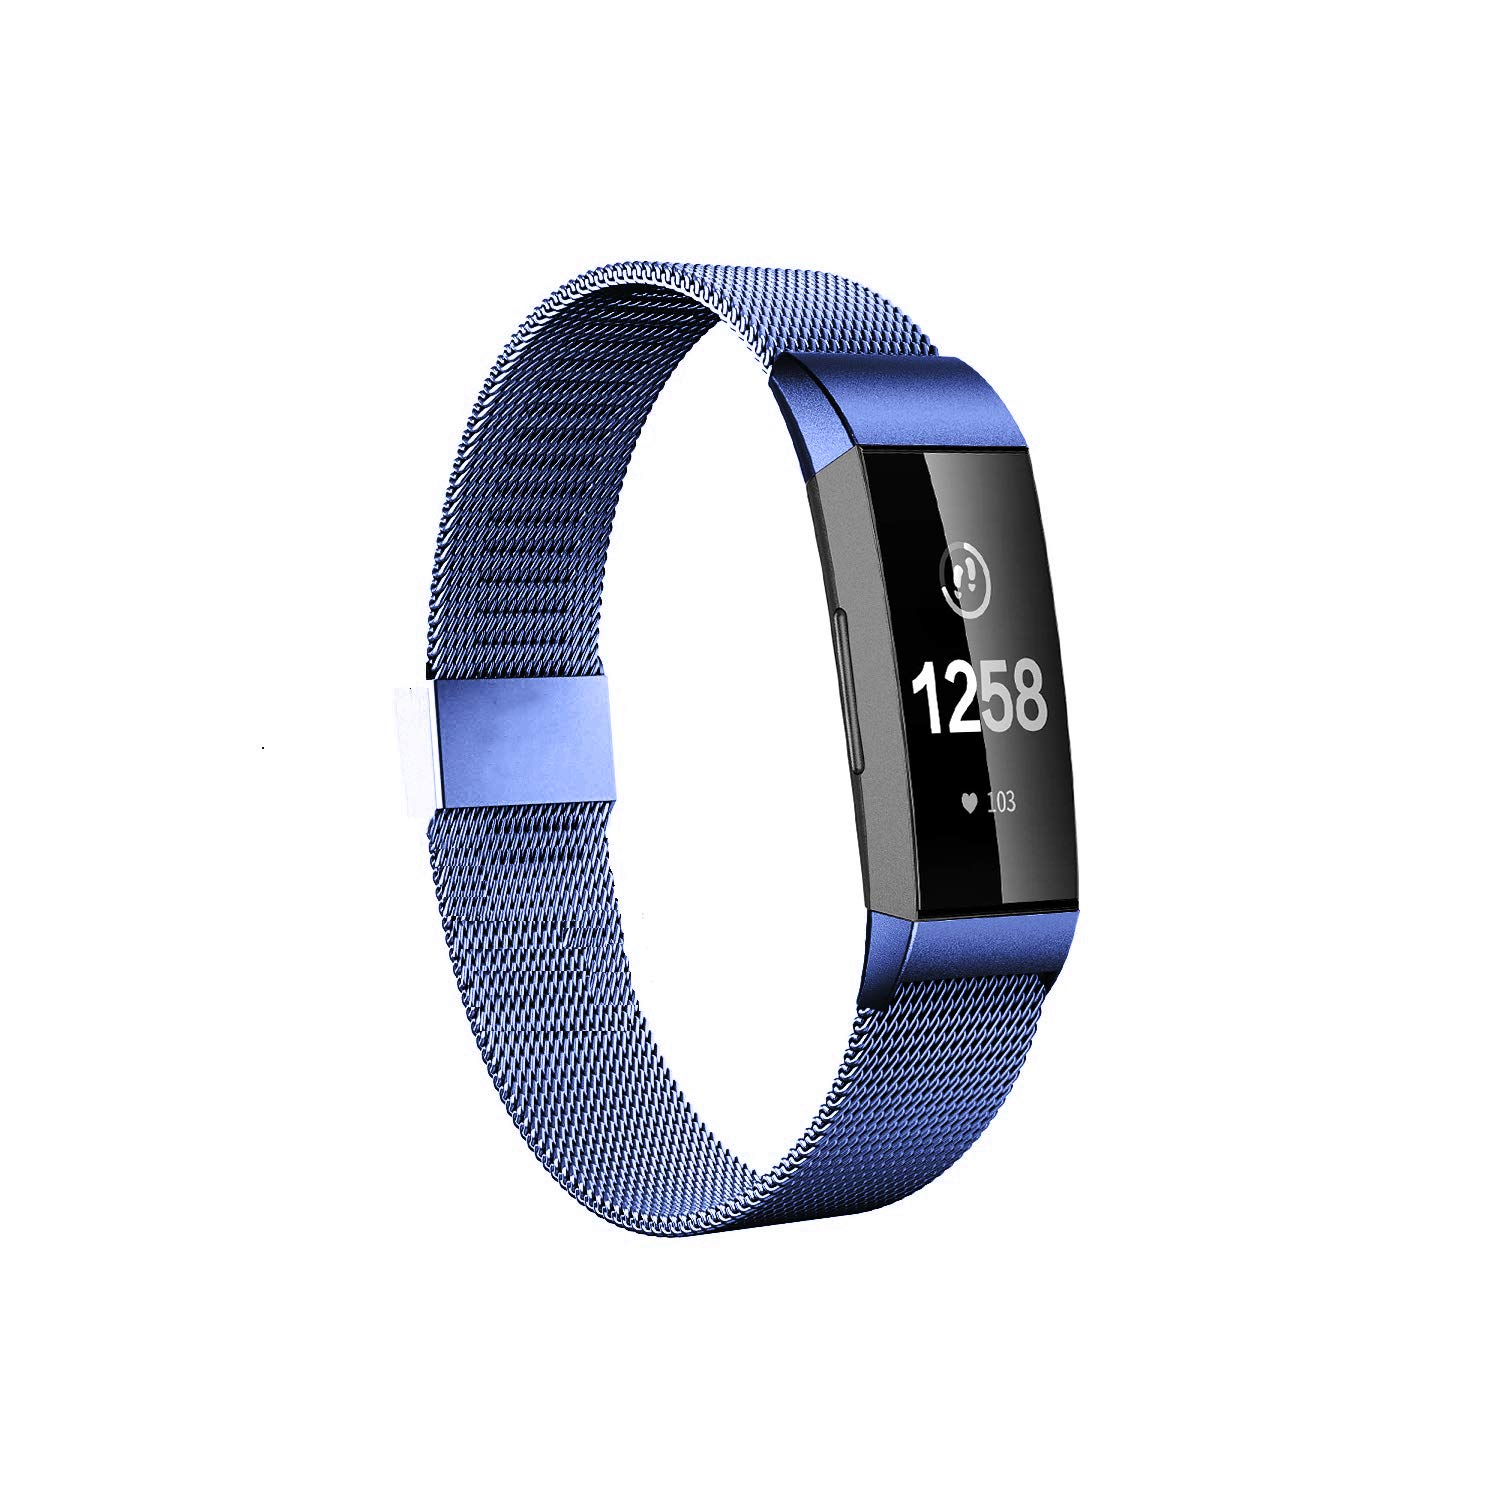 Fitlink Stainless Steel Bands Replacement for Charge 3 and Charge 3 SE for Women Men(Blue,Small)